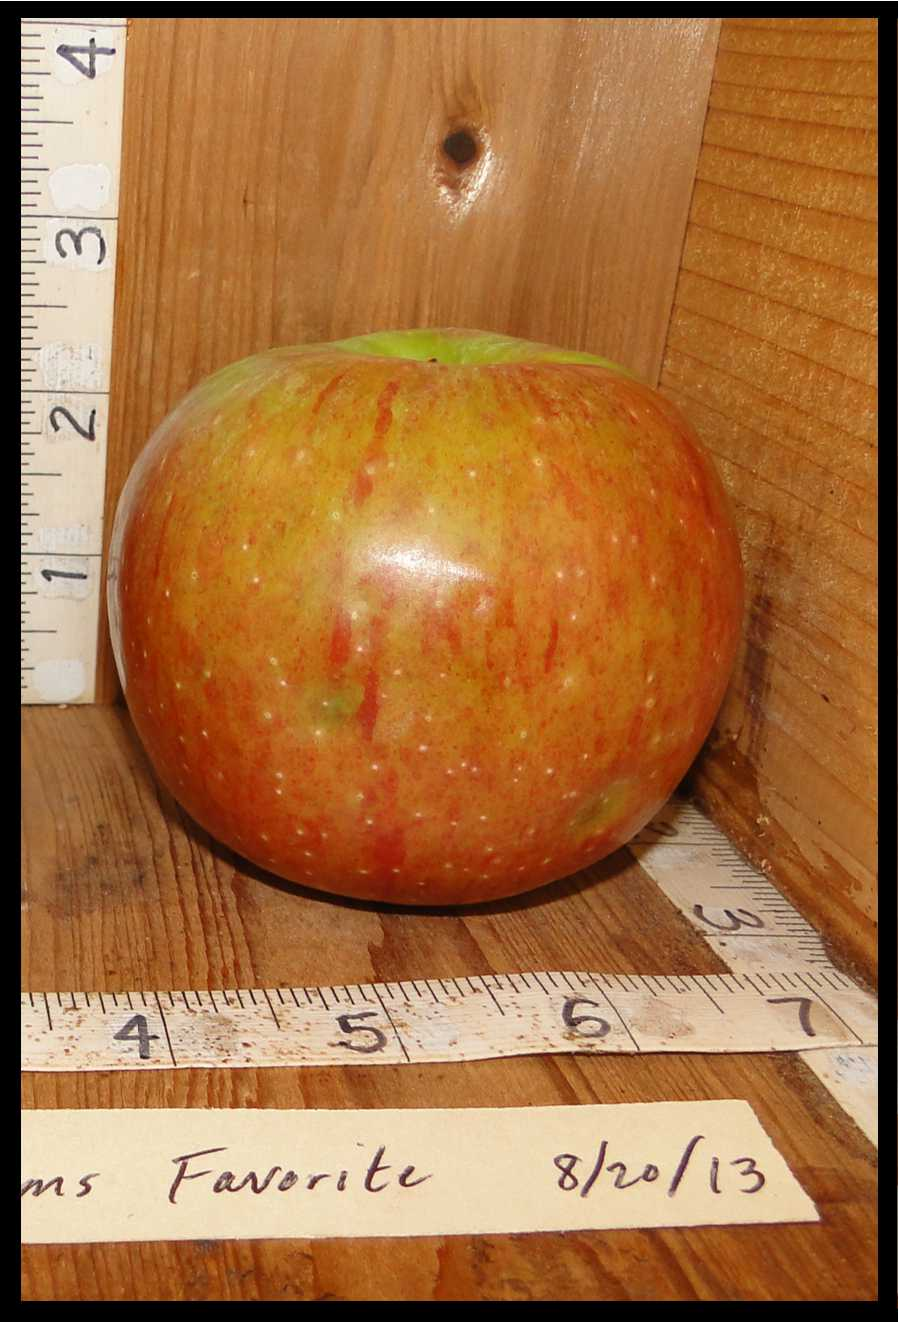 green apple largely covered with light red streaks and blush